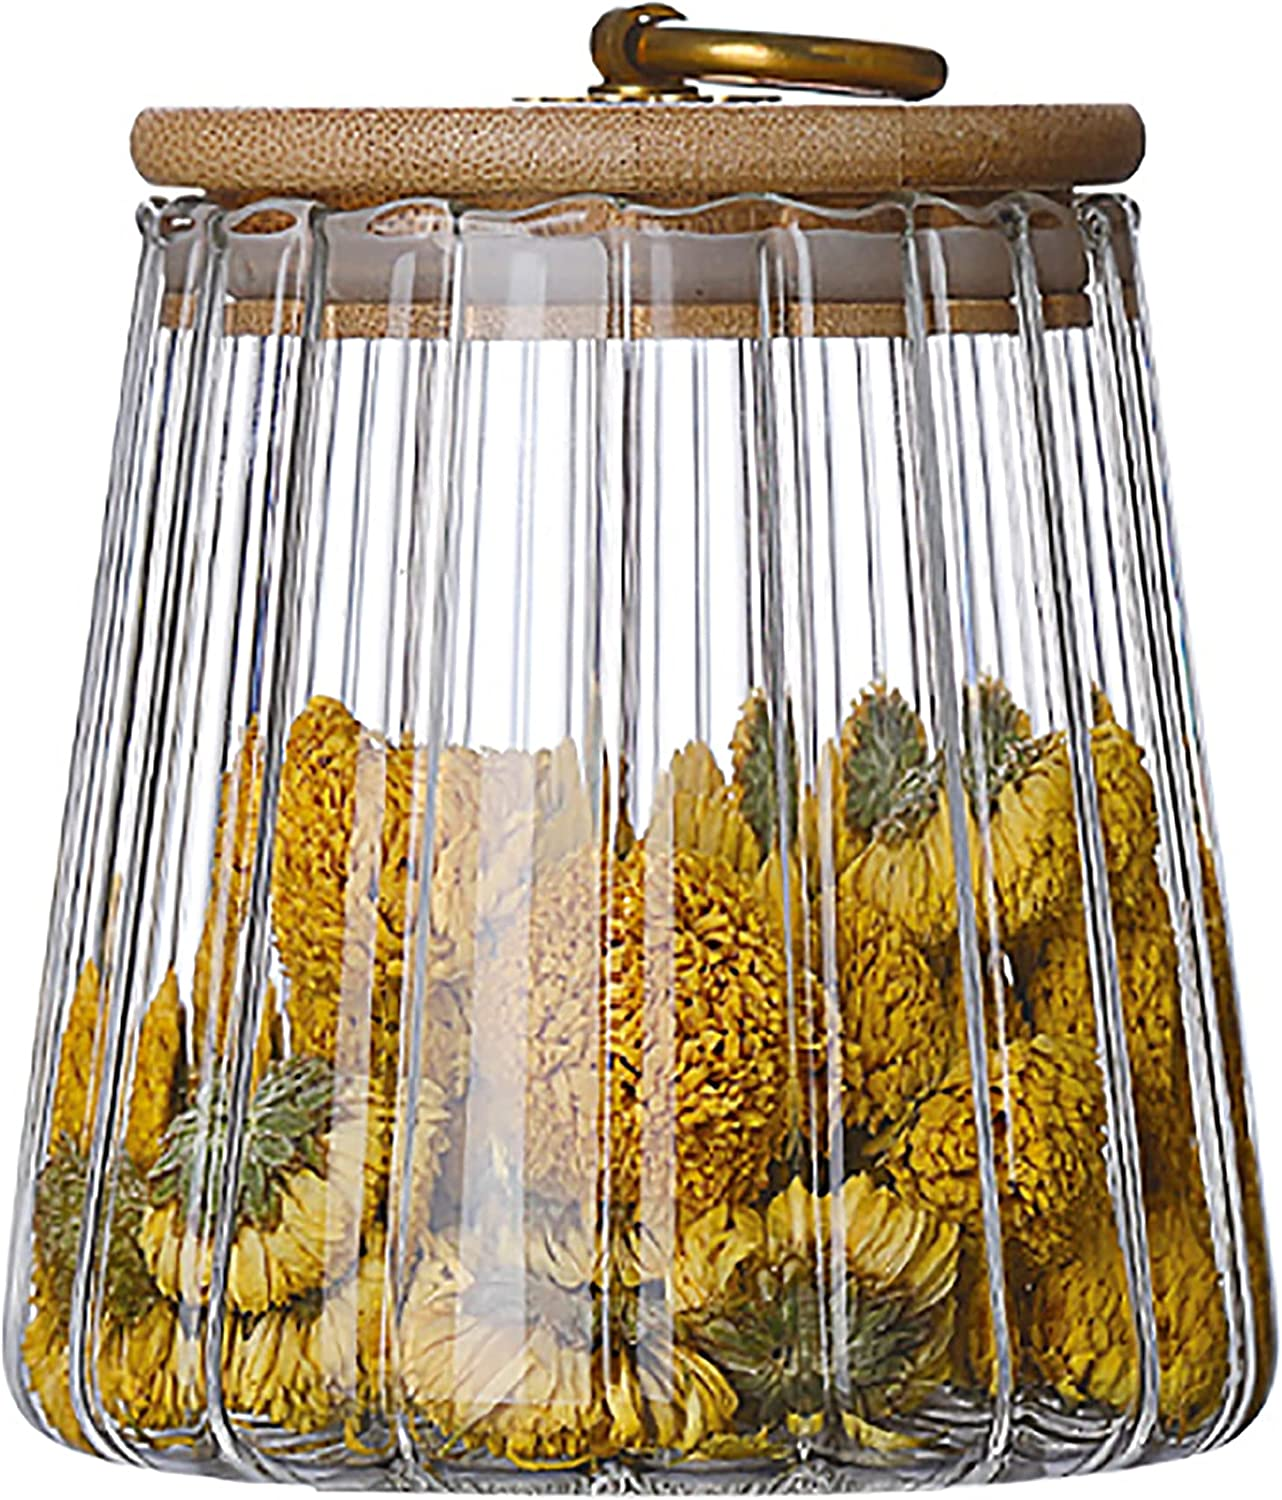 Glass Coffee Nuts Canister Airtight Storage Jar Petal Decorative Container with Bamboo Lid Metal Handle Easy to Grasp 700ml (23oz) (Style 2)